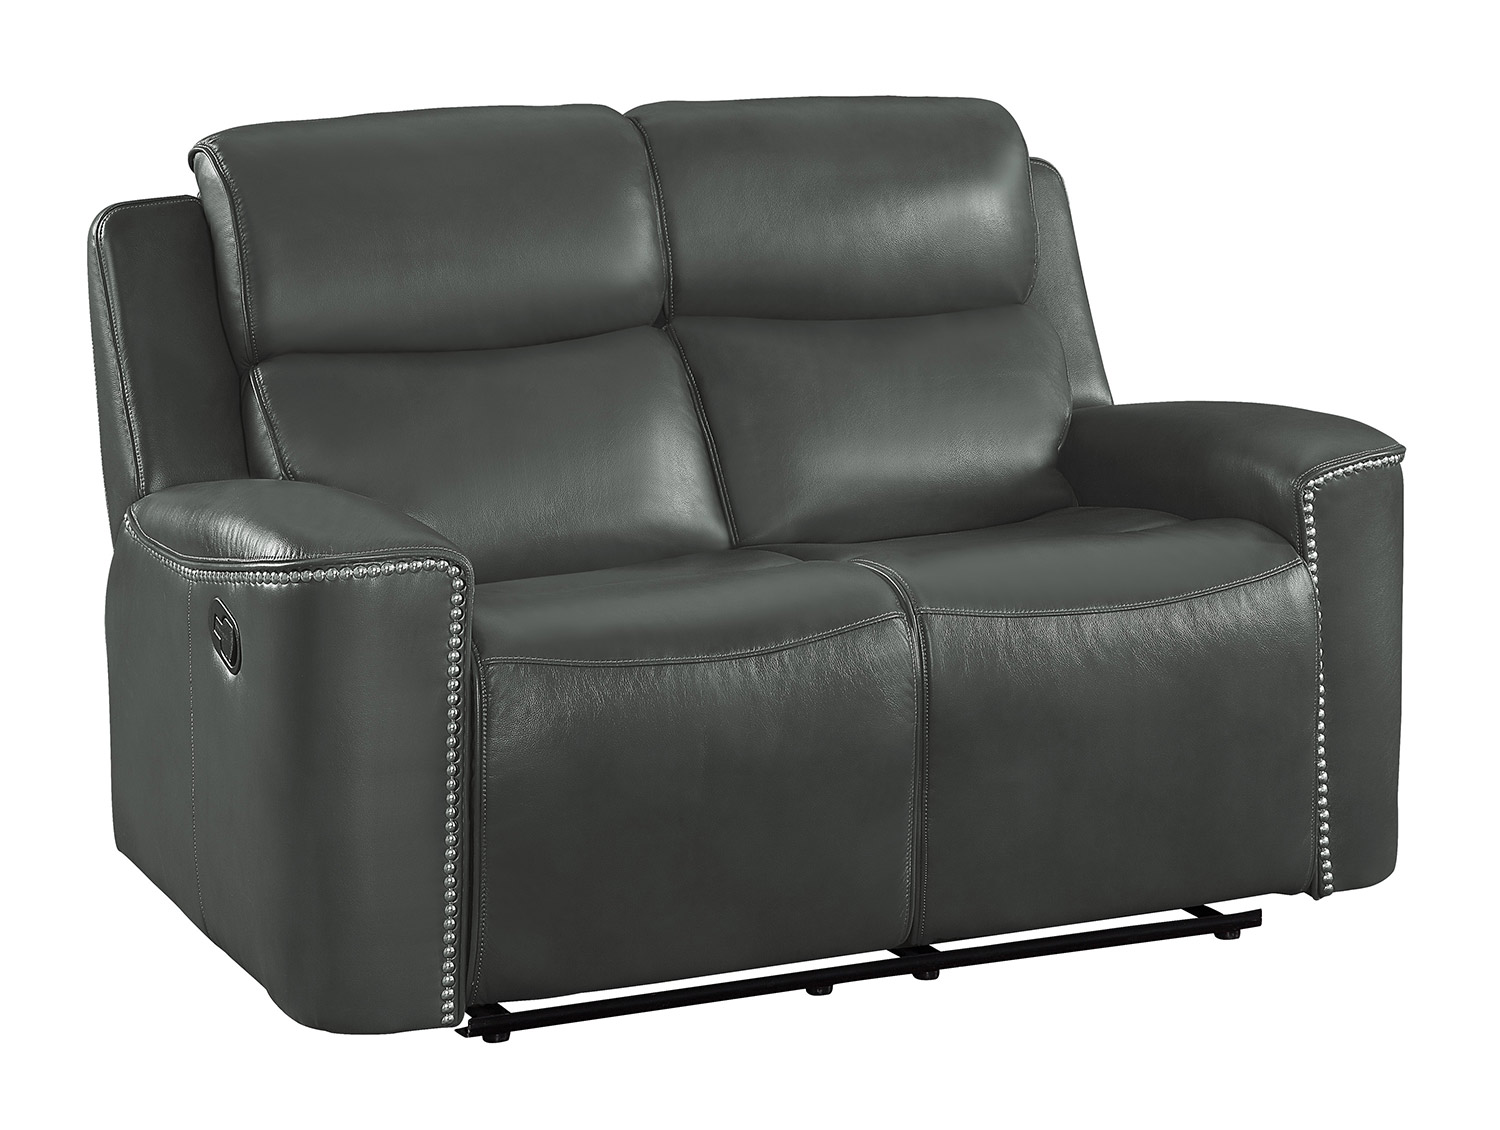 Homelegance Altair Double Reclining Love Seat - Gray